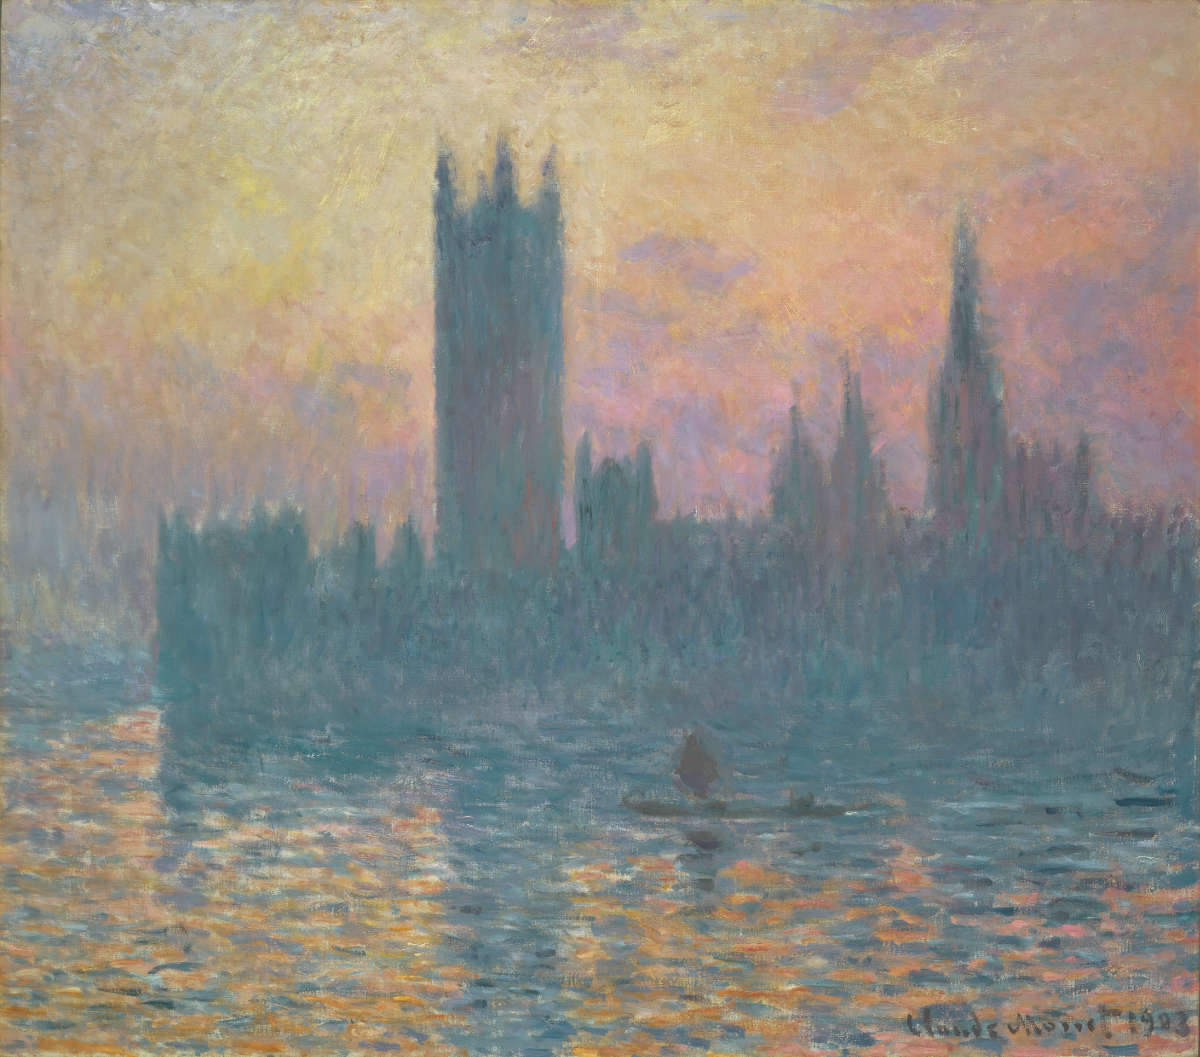 Fig. 5 -Las casas del Parlamento, Sunset, Claude Monet, 1903. National Gallery of Art, Washington. Colección de Chester Dale.